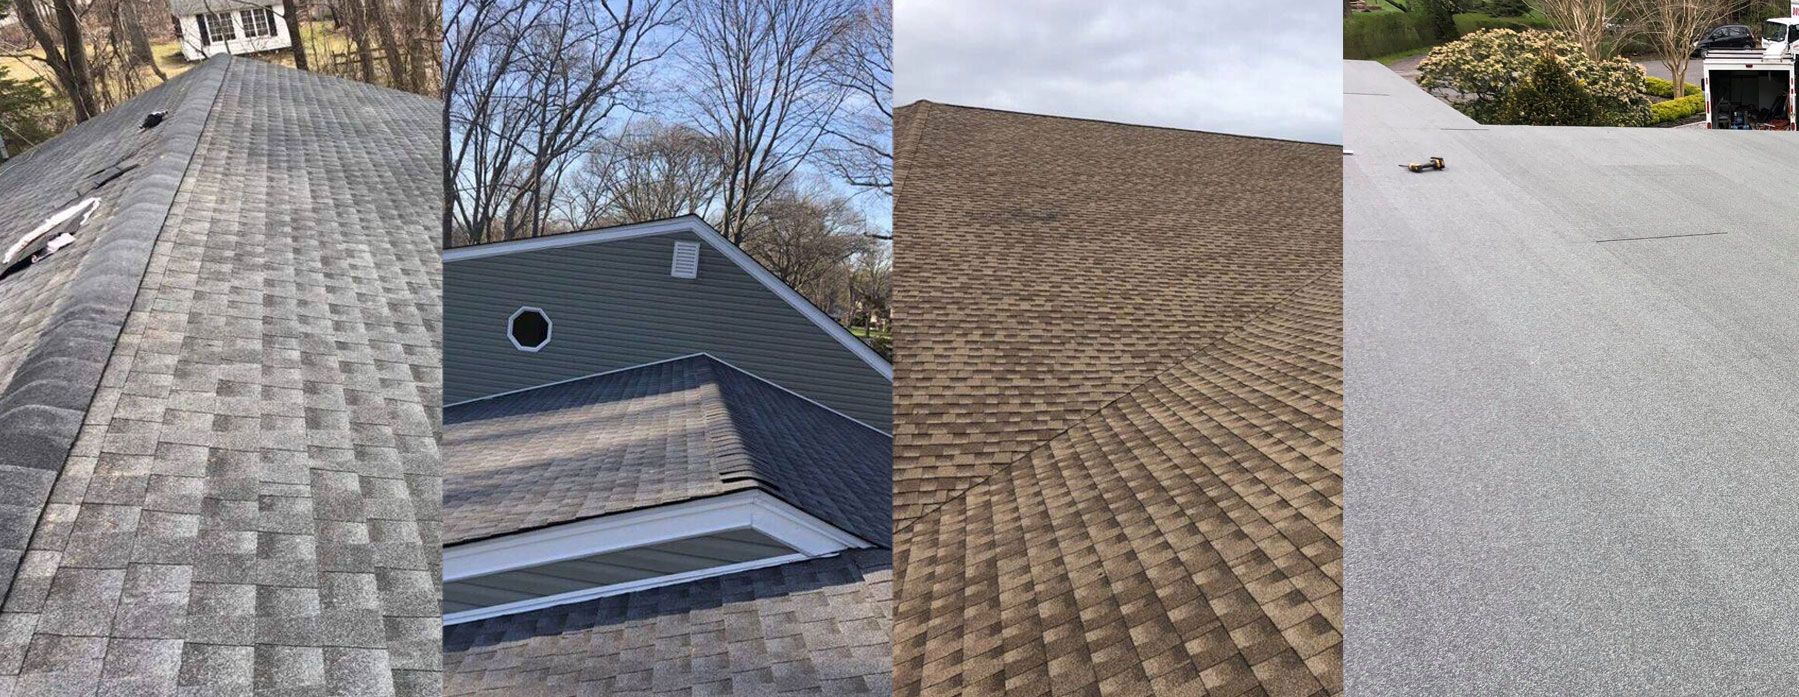 Roof Repair Near Long Beach NY 11561